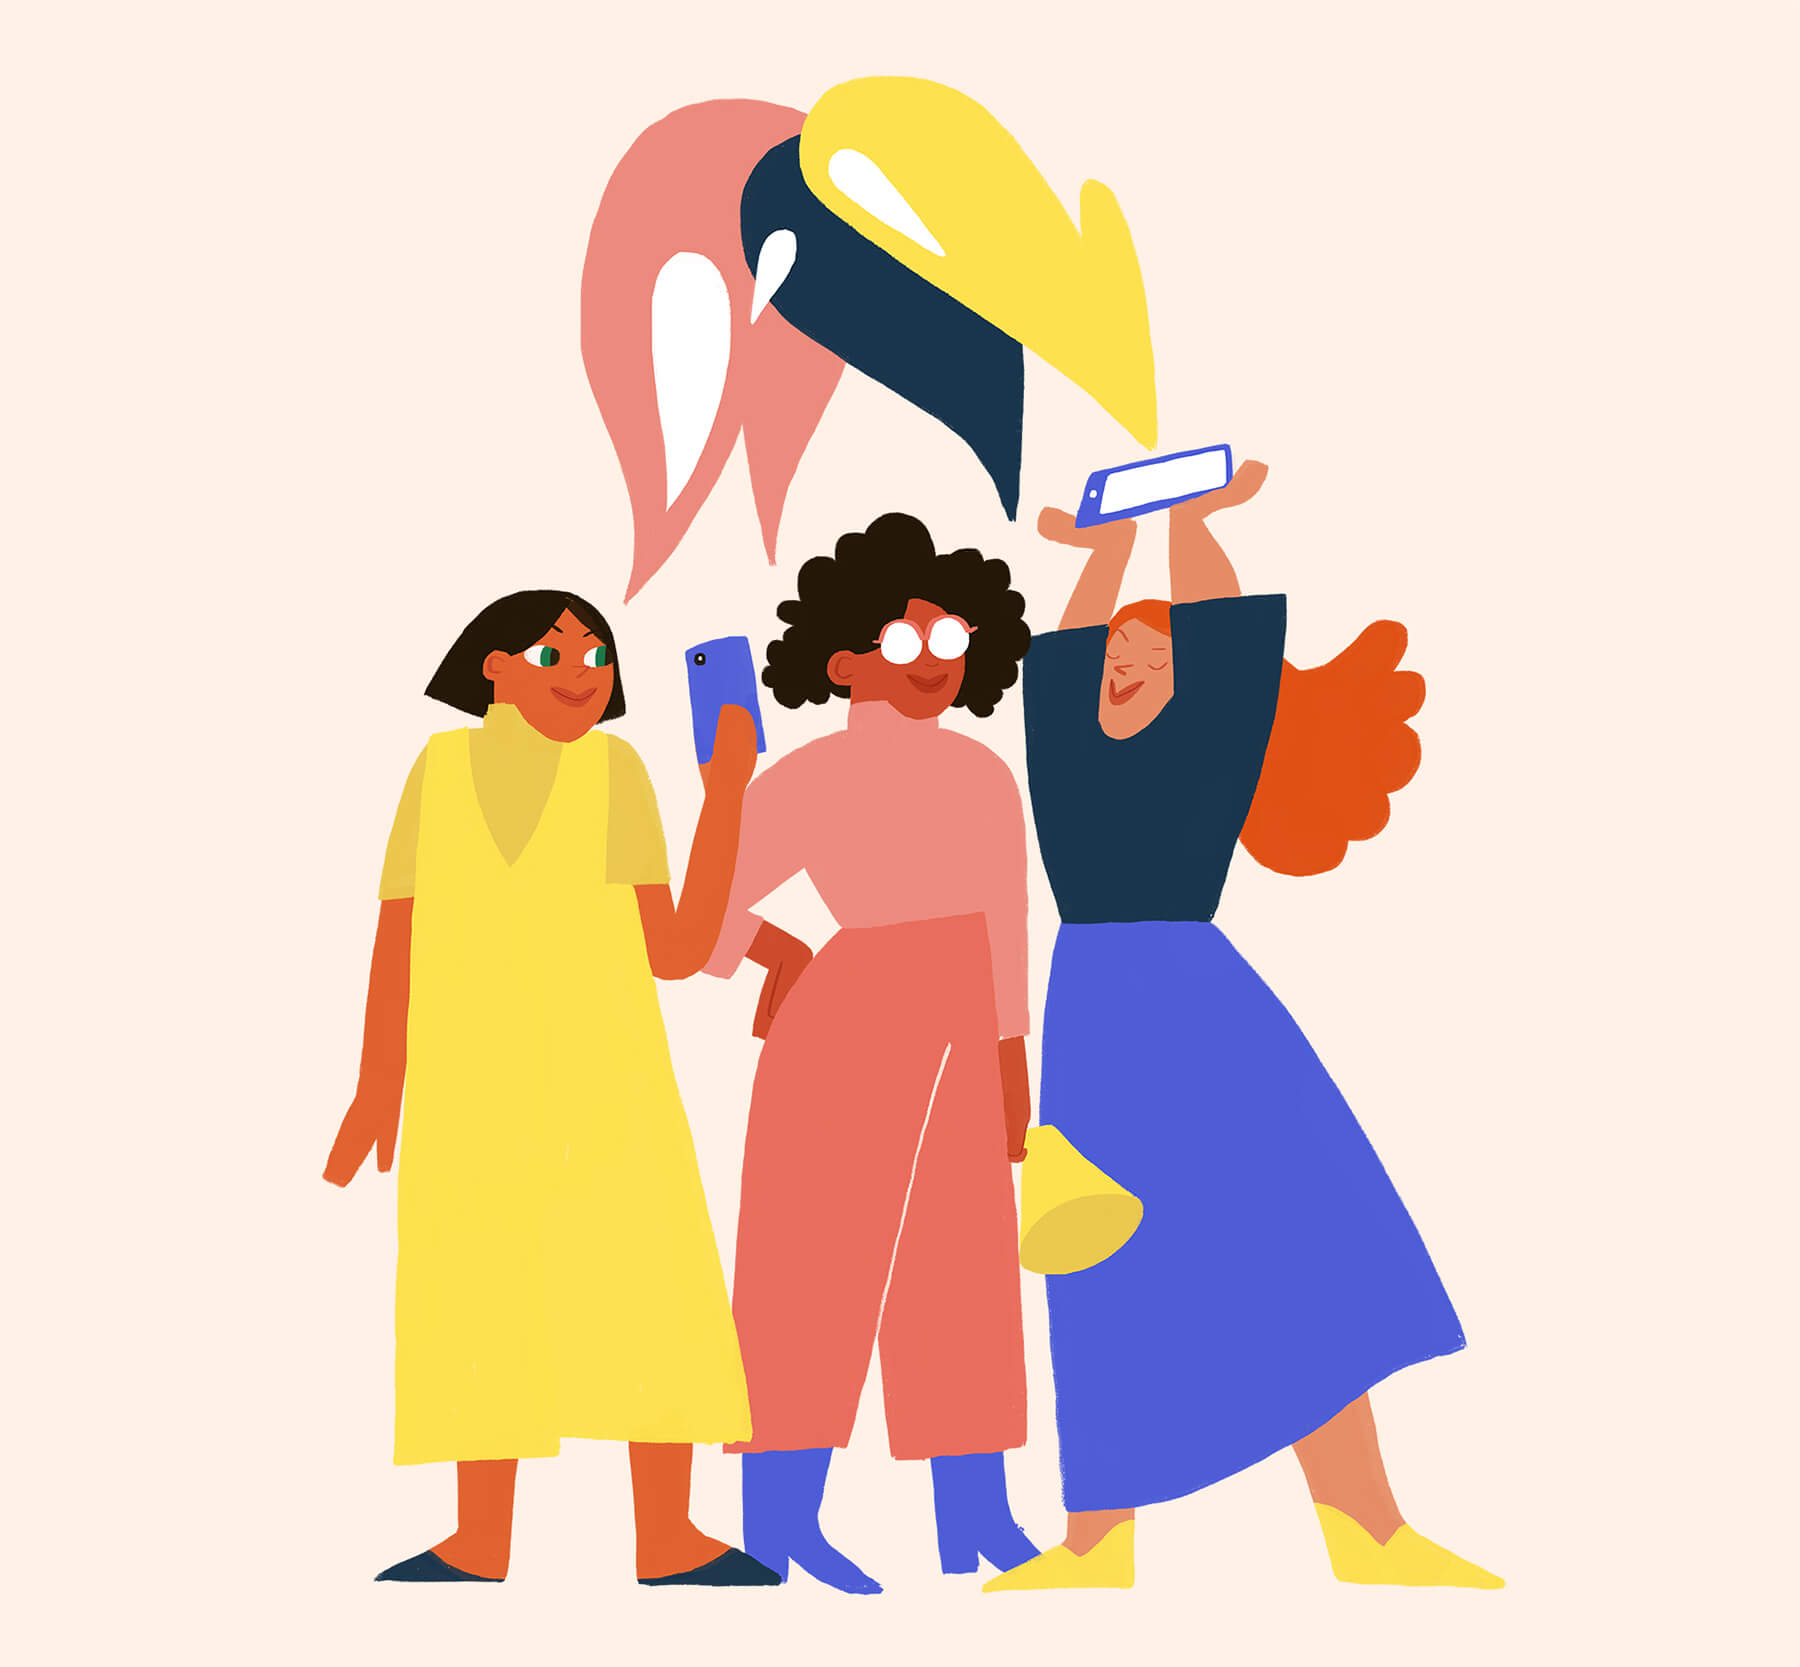 women-together-community-communication-illustration-violeta-noy